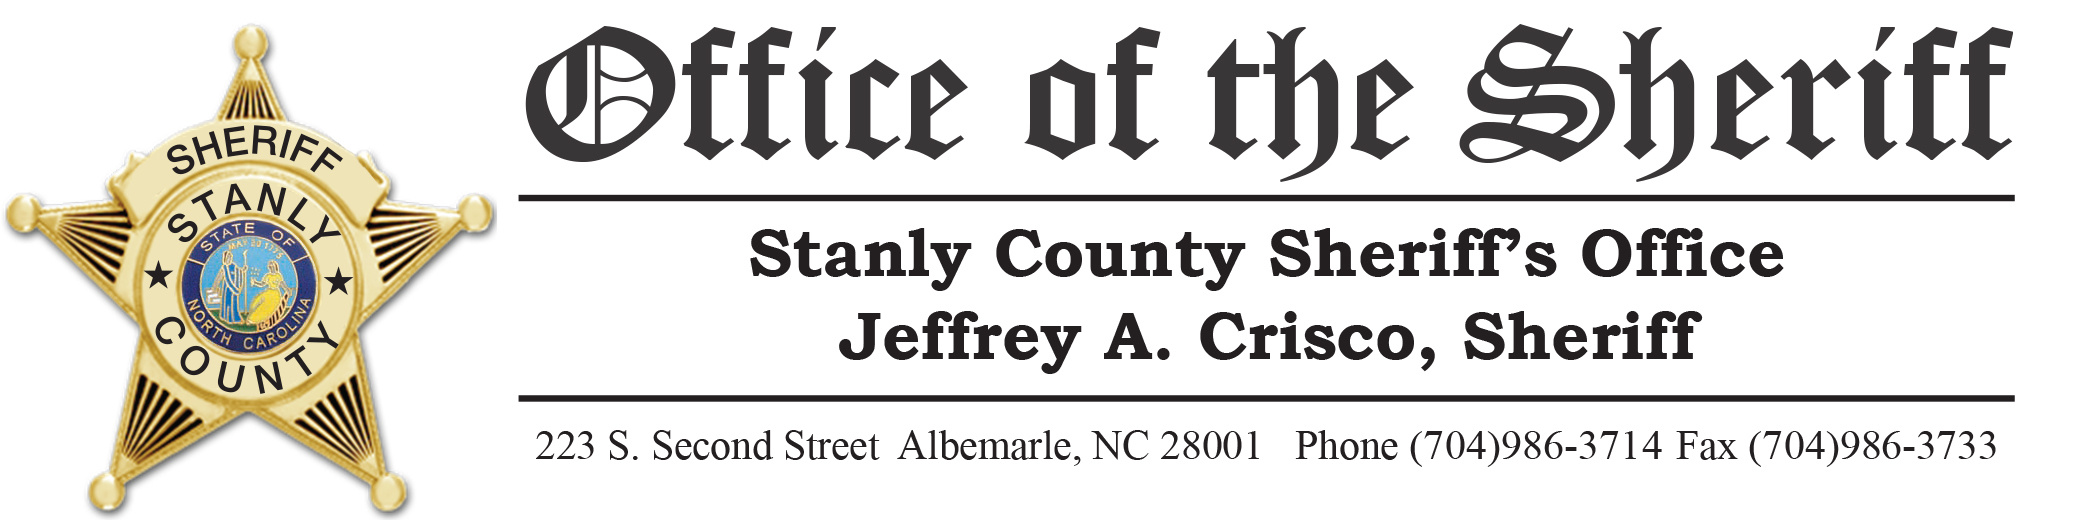 Stanly County Sheriff's Office